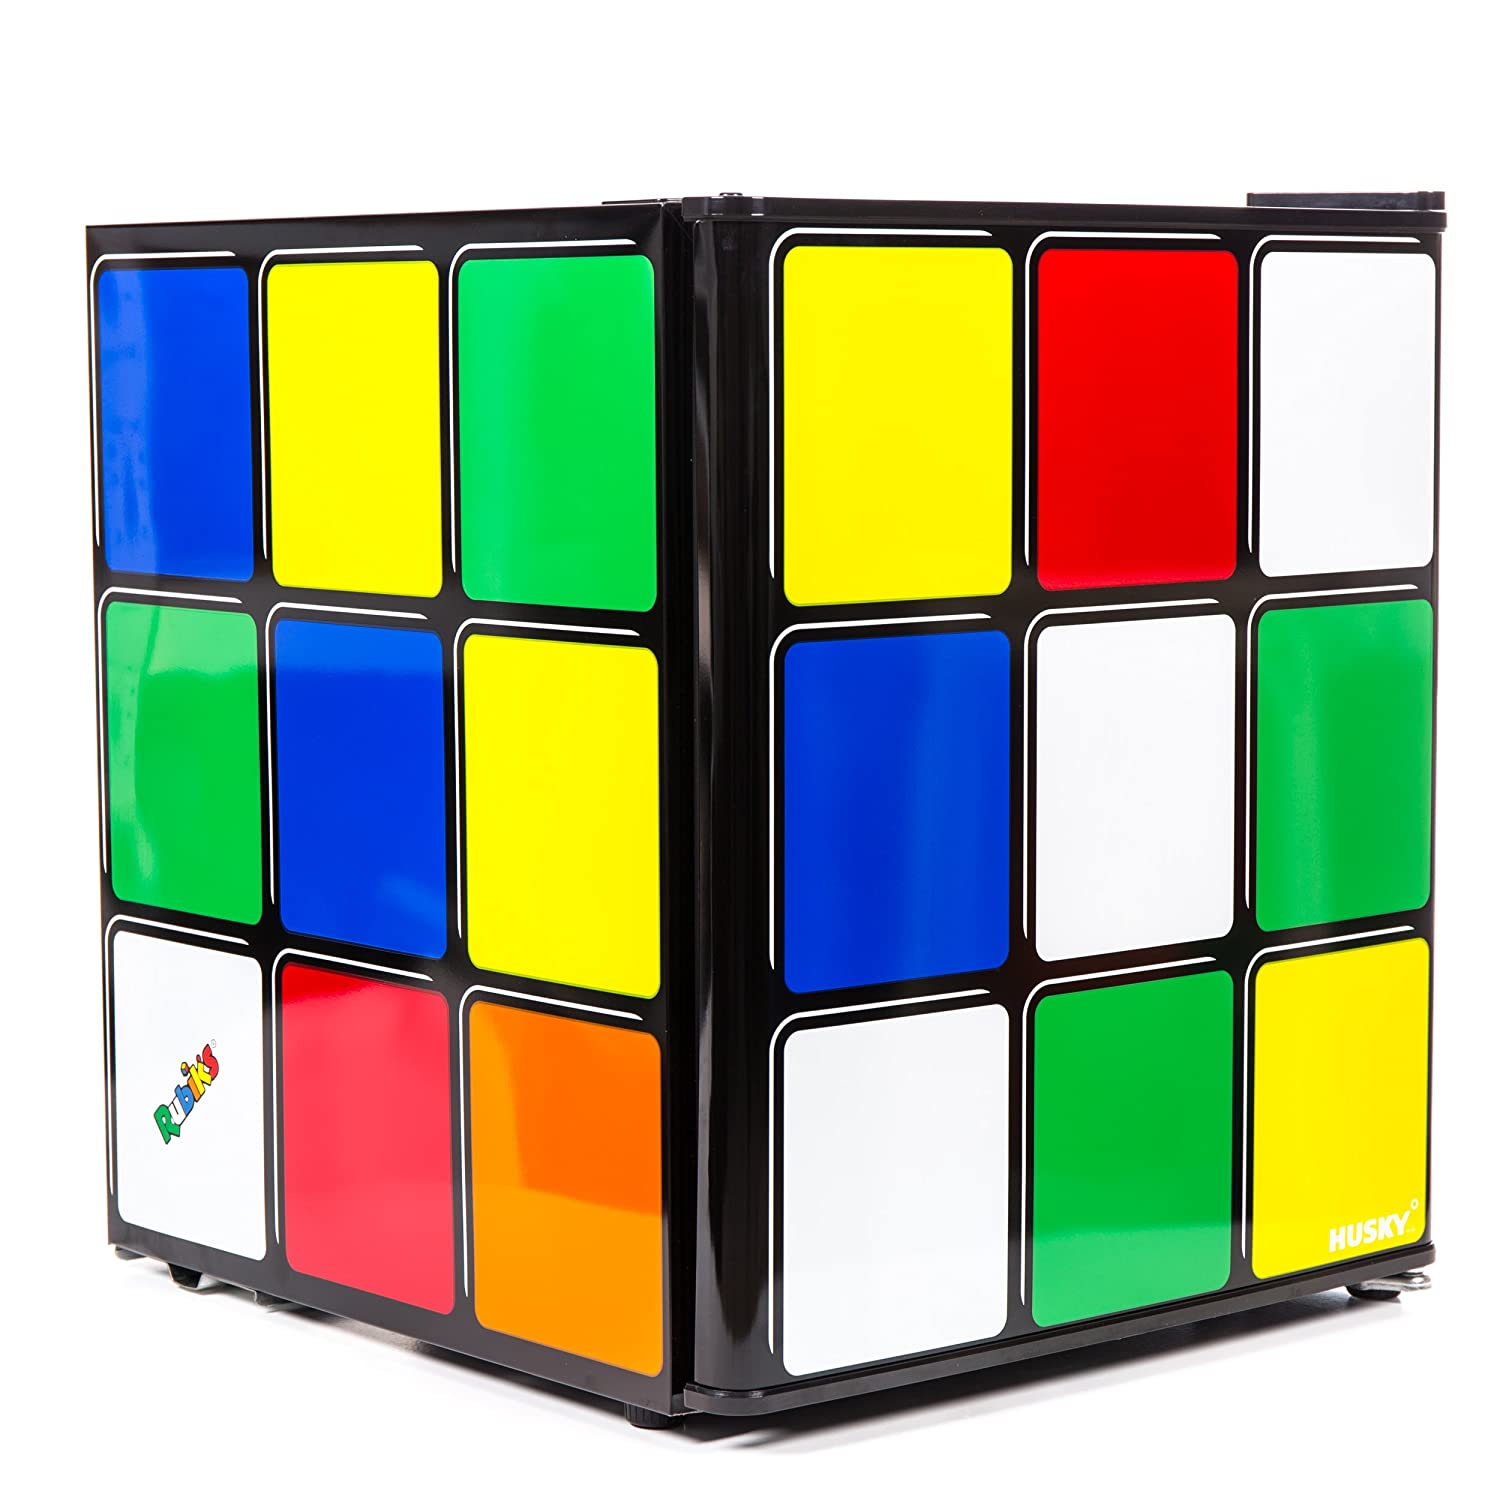 Husky HUS-HU231 Rubiks Cube Mini Fridge [Energy Class A+]